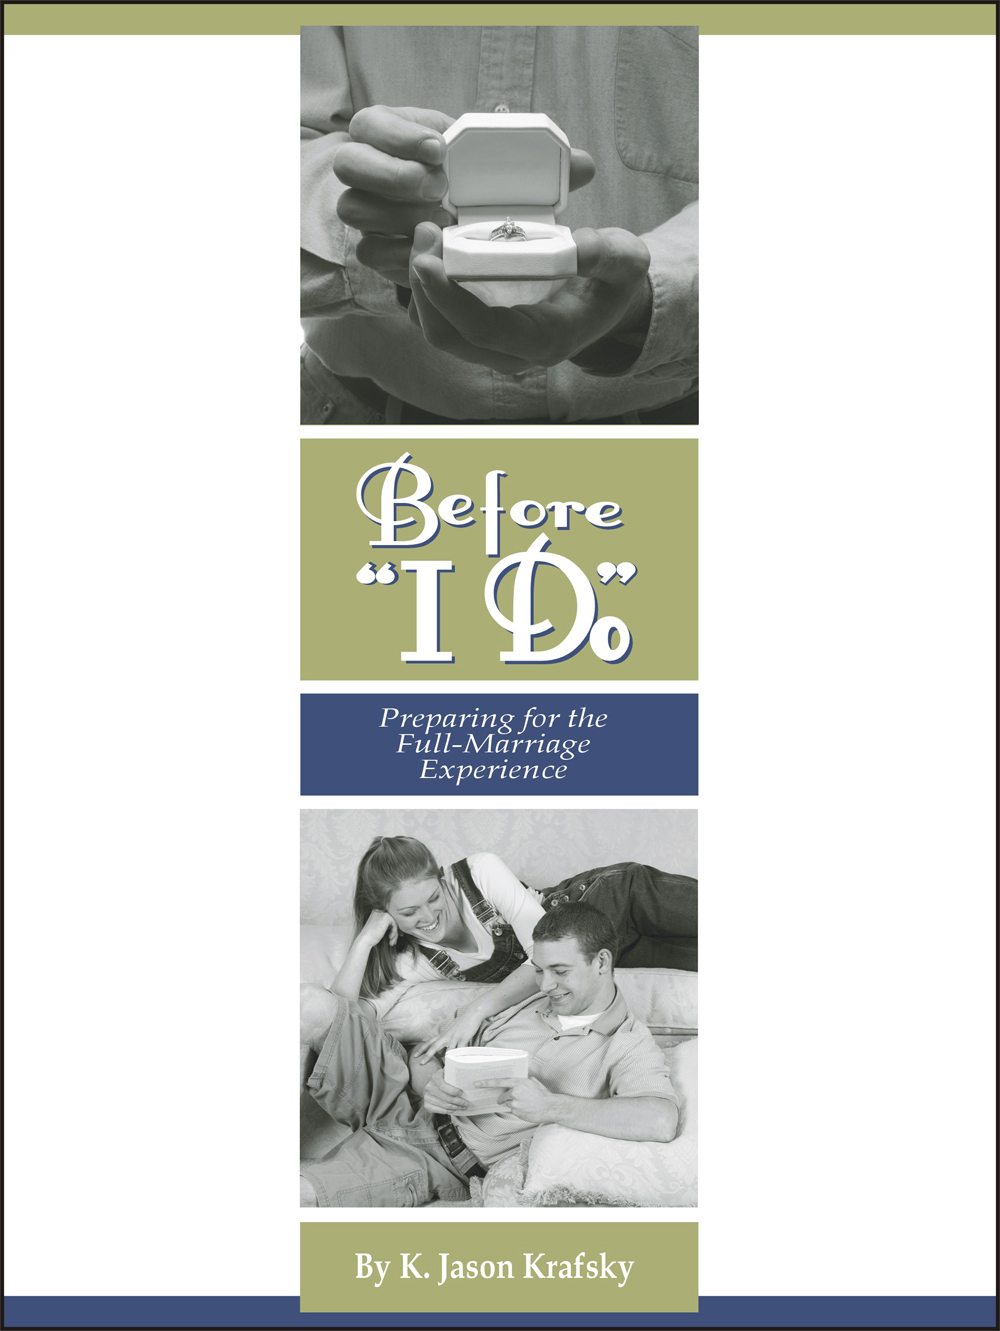 b4ido front cover